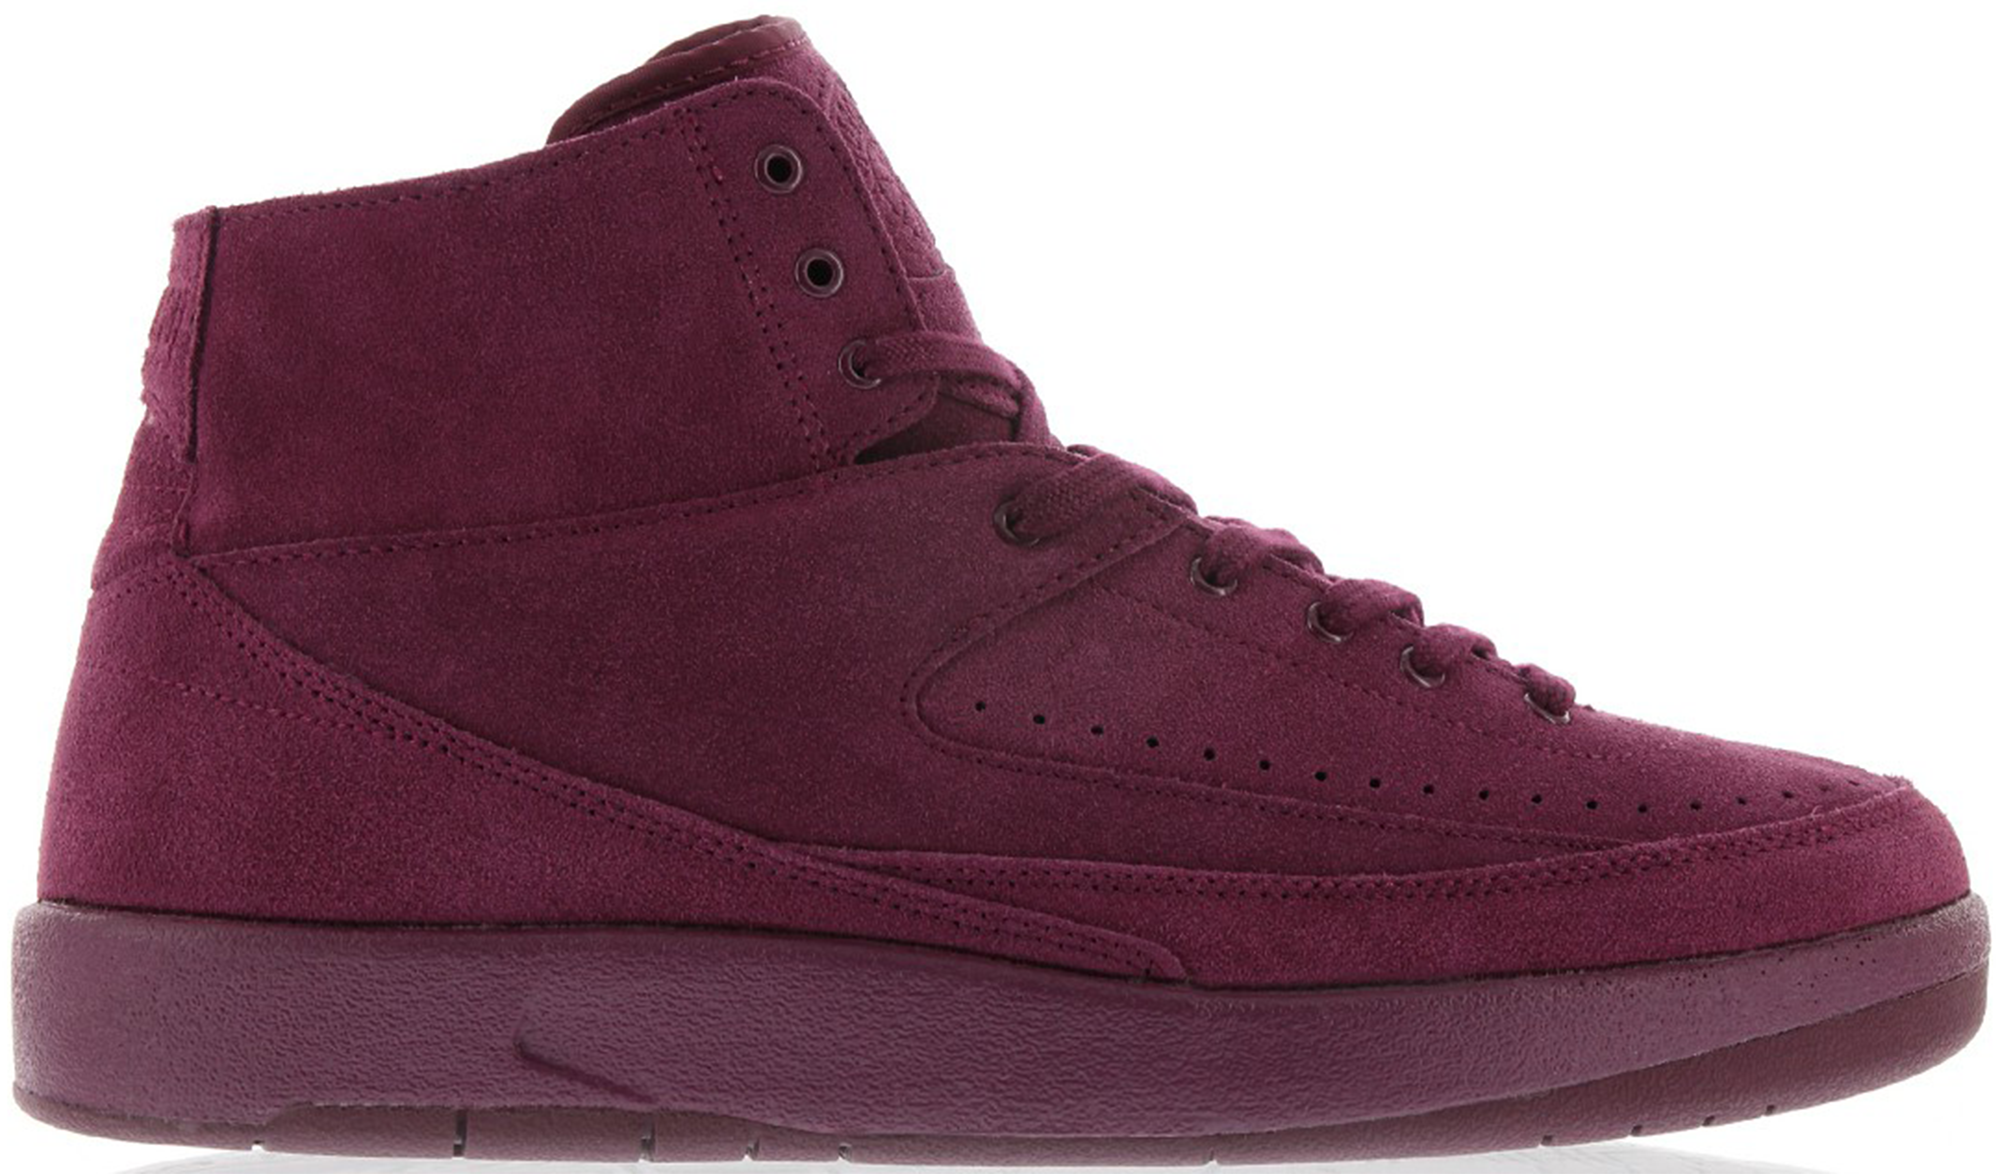 Jordan 2 Retro Decon Bordeaux